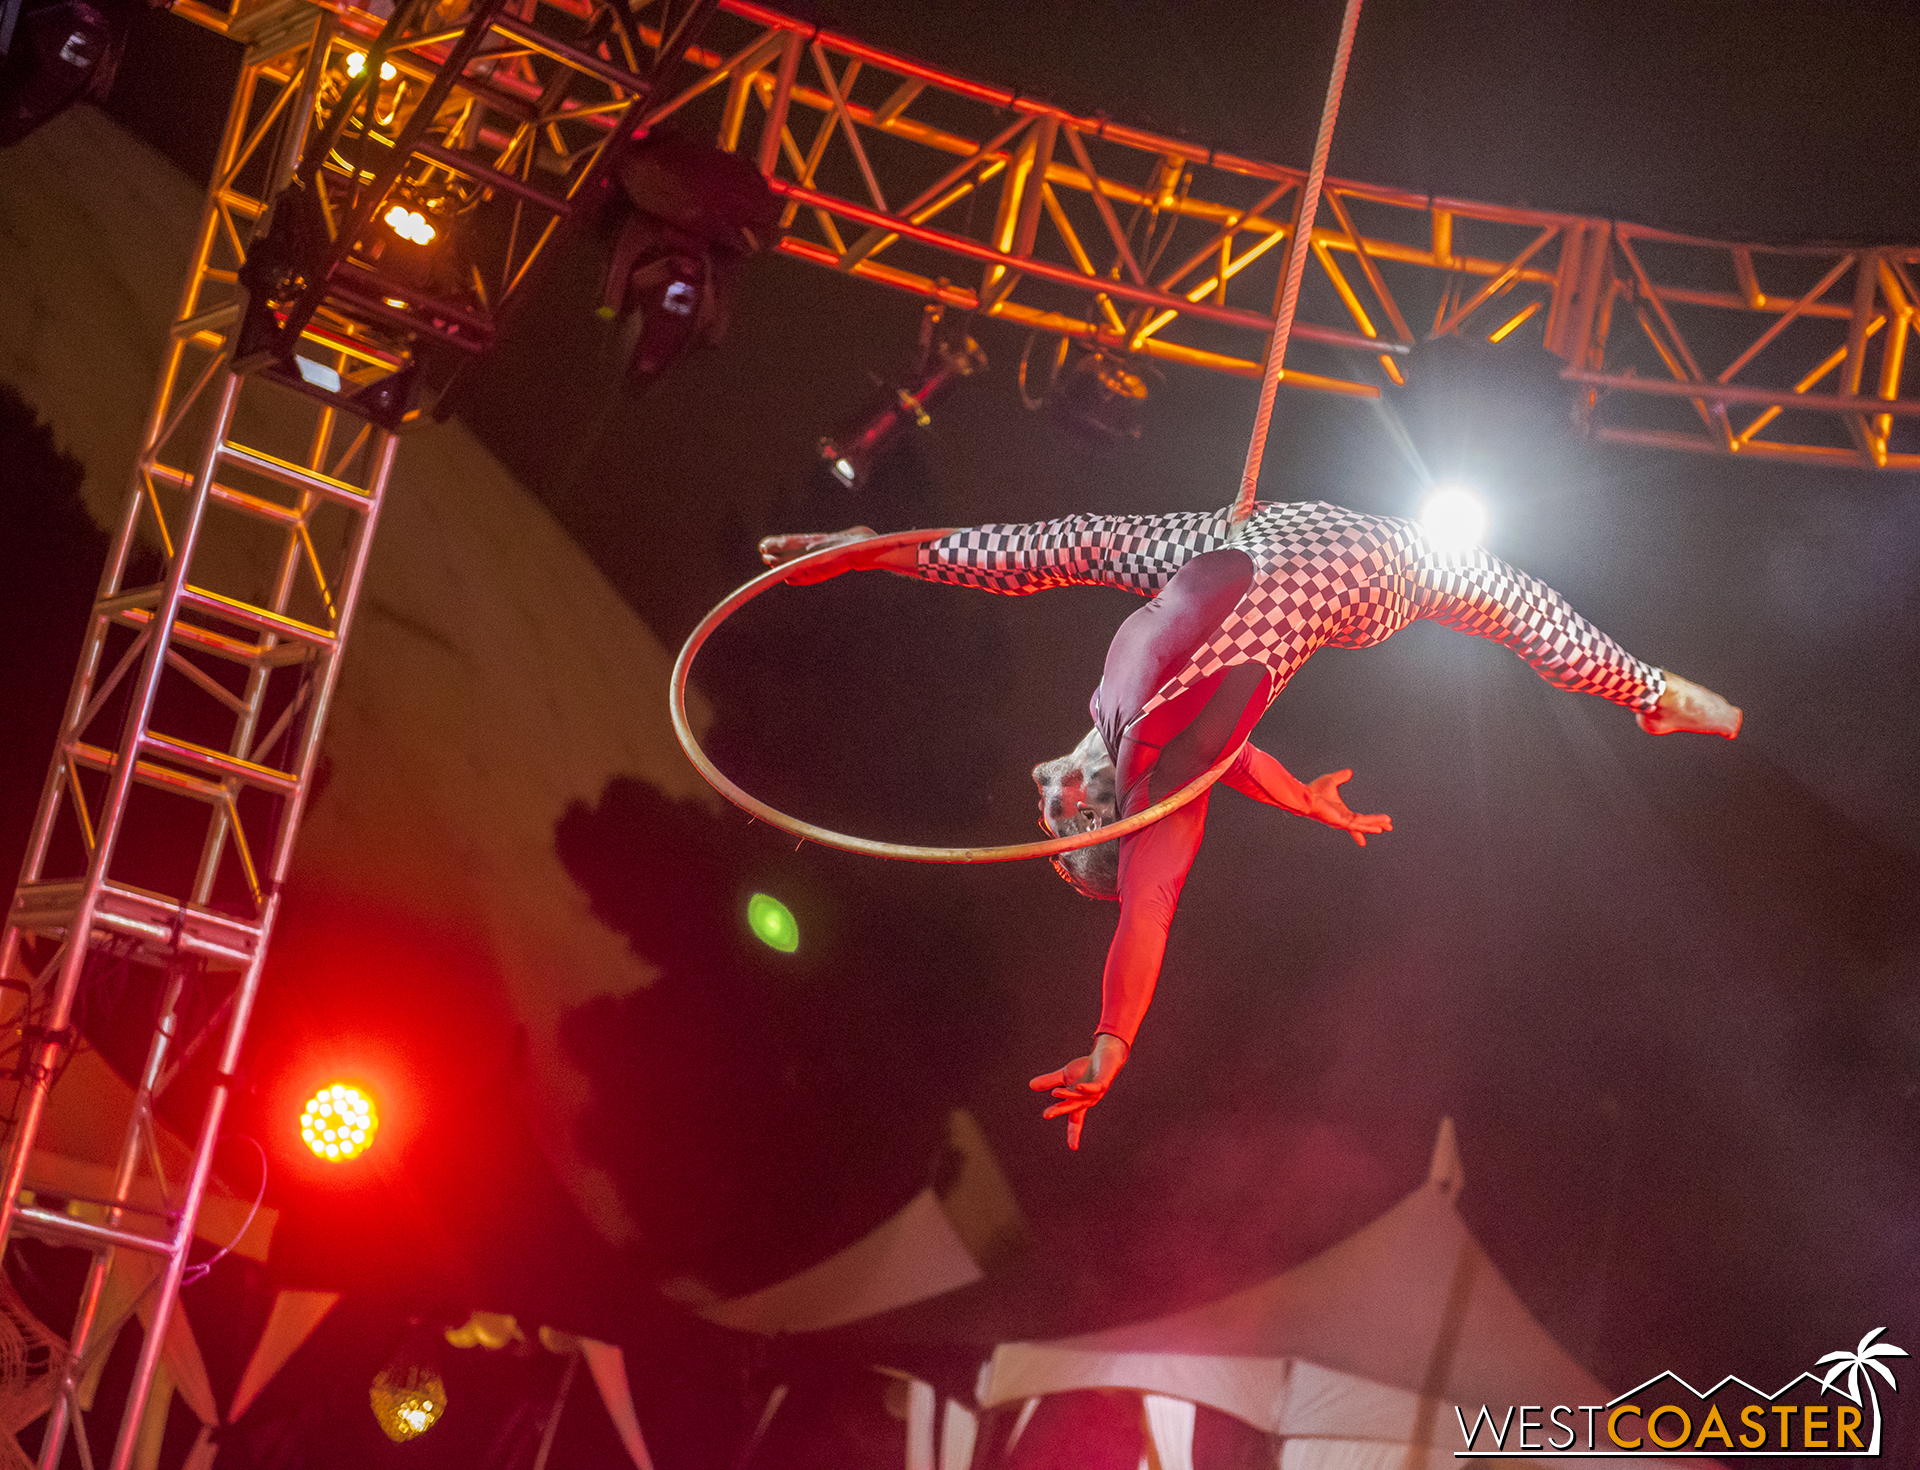 Dark Harbor has a lot of very athletically and gymnastically talented performers.